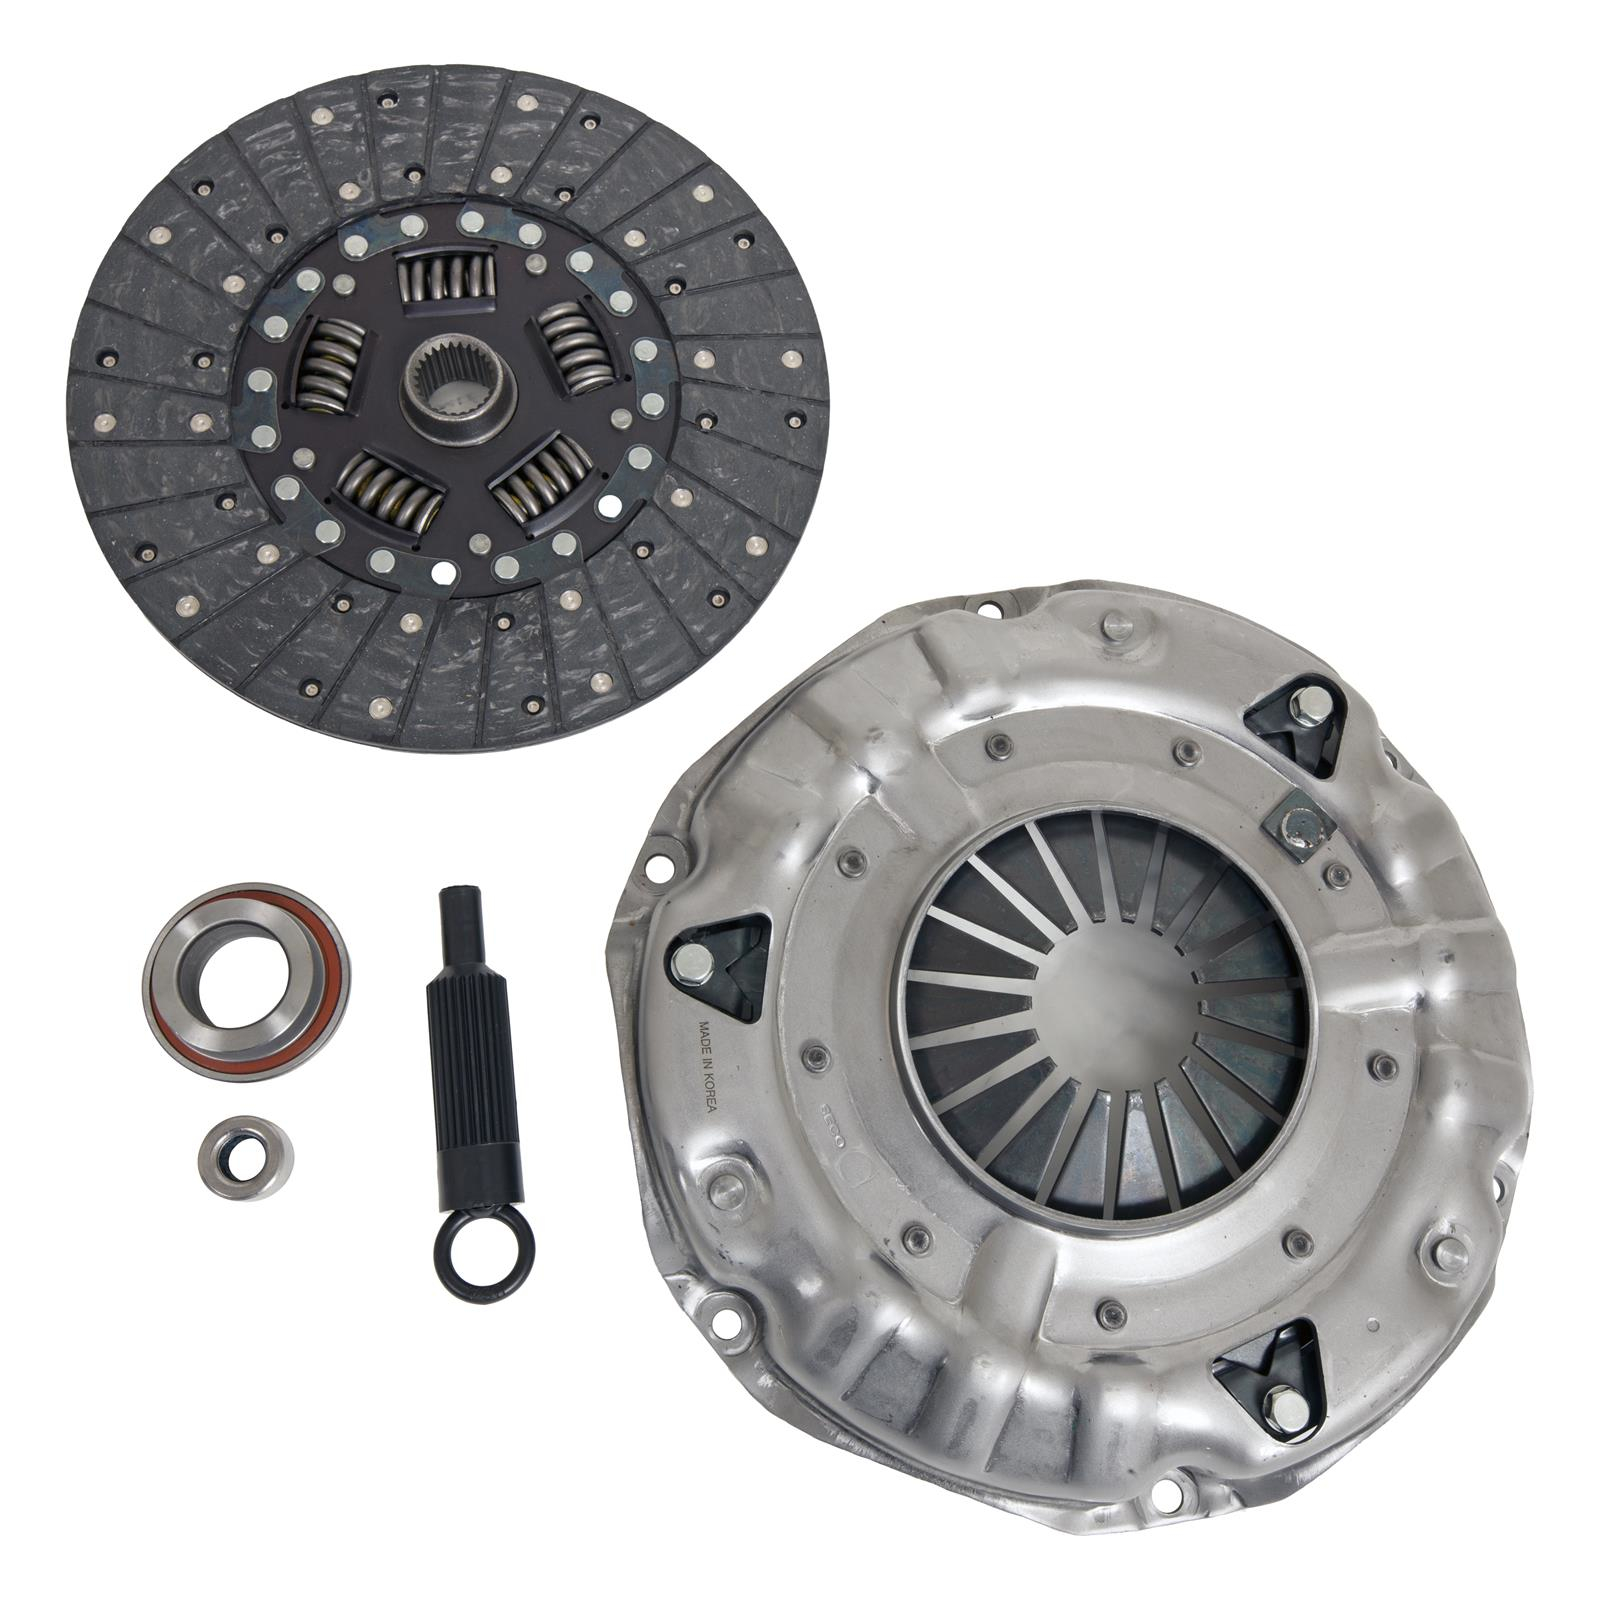 The newest performance parts now available at summit racing equipment summit racing oem replacement clutch kit for gm 1126 spline clutch sciox Choice Image